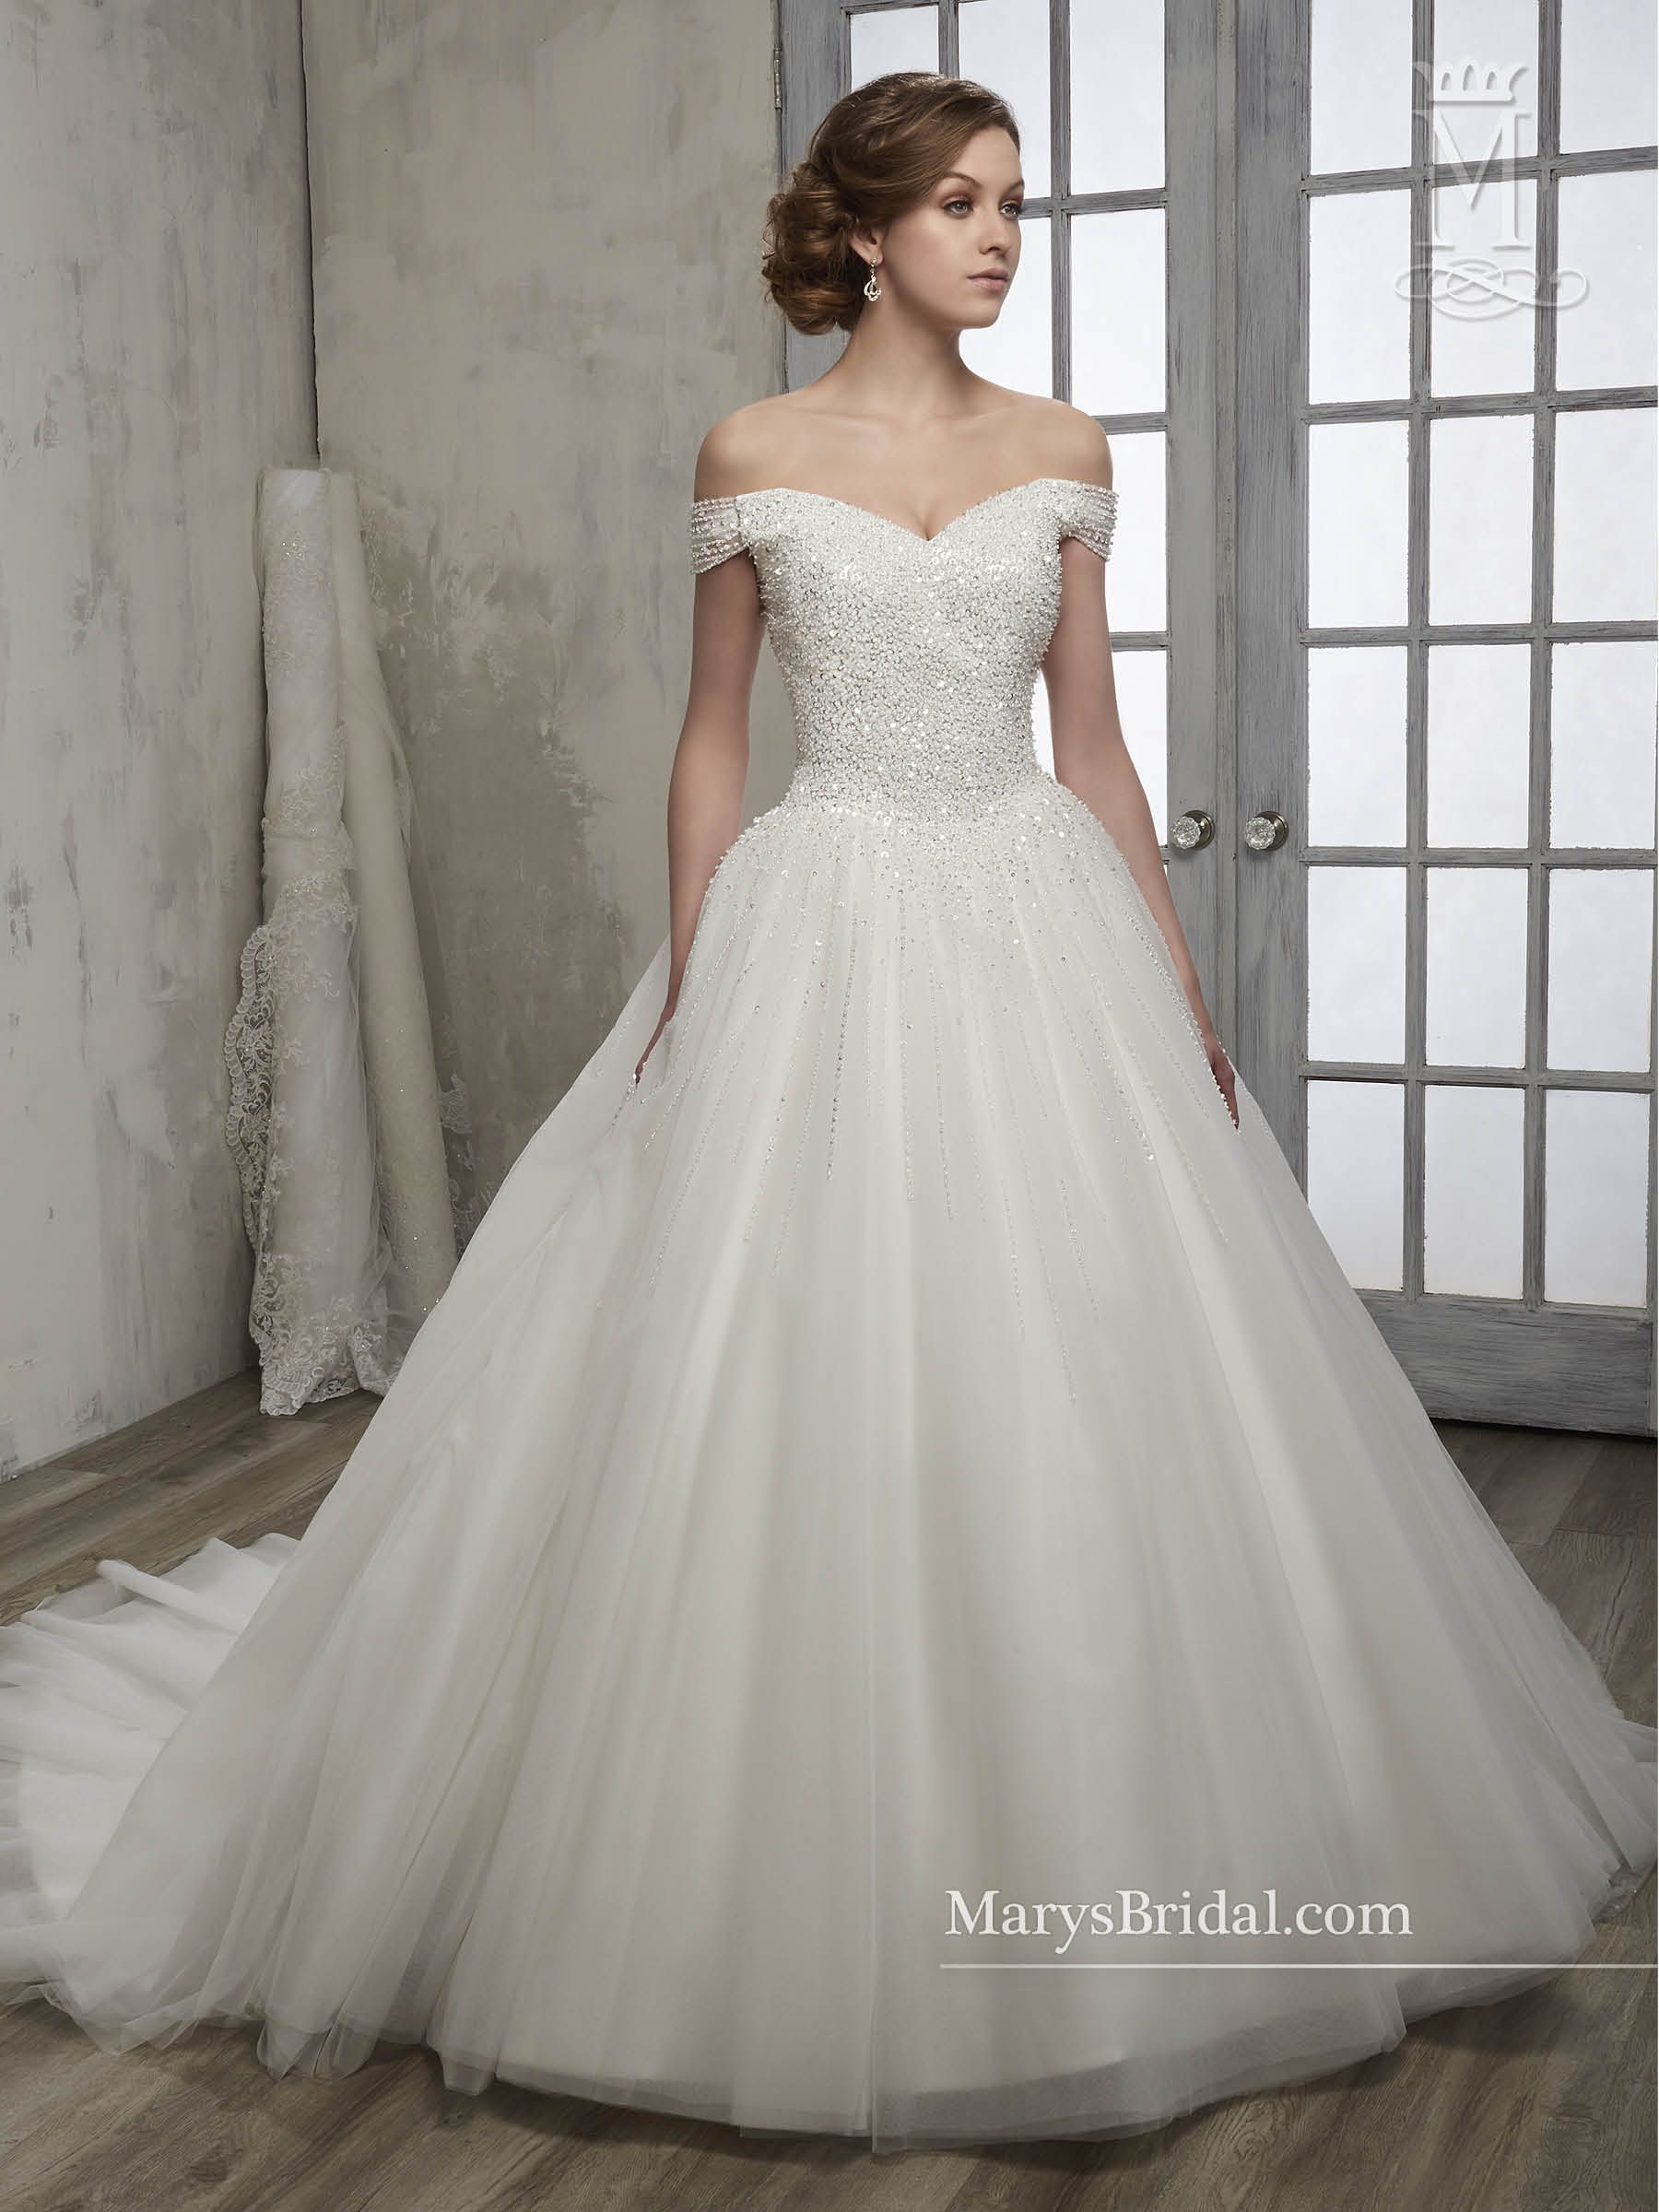 Wedding Dresses Bridesmaid Prom And Bridal Best Prices